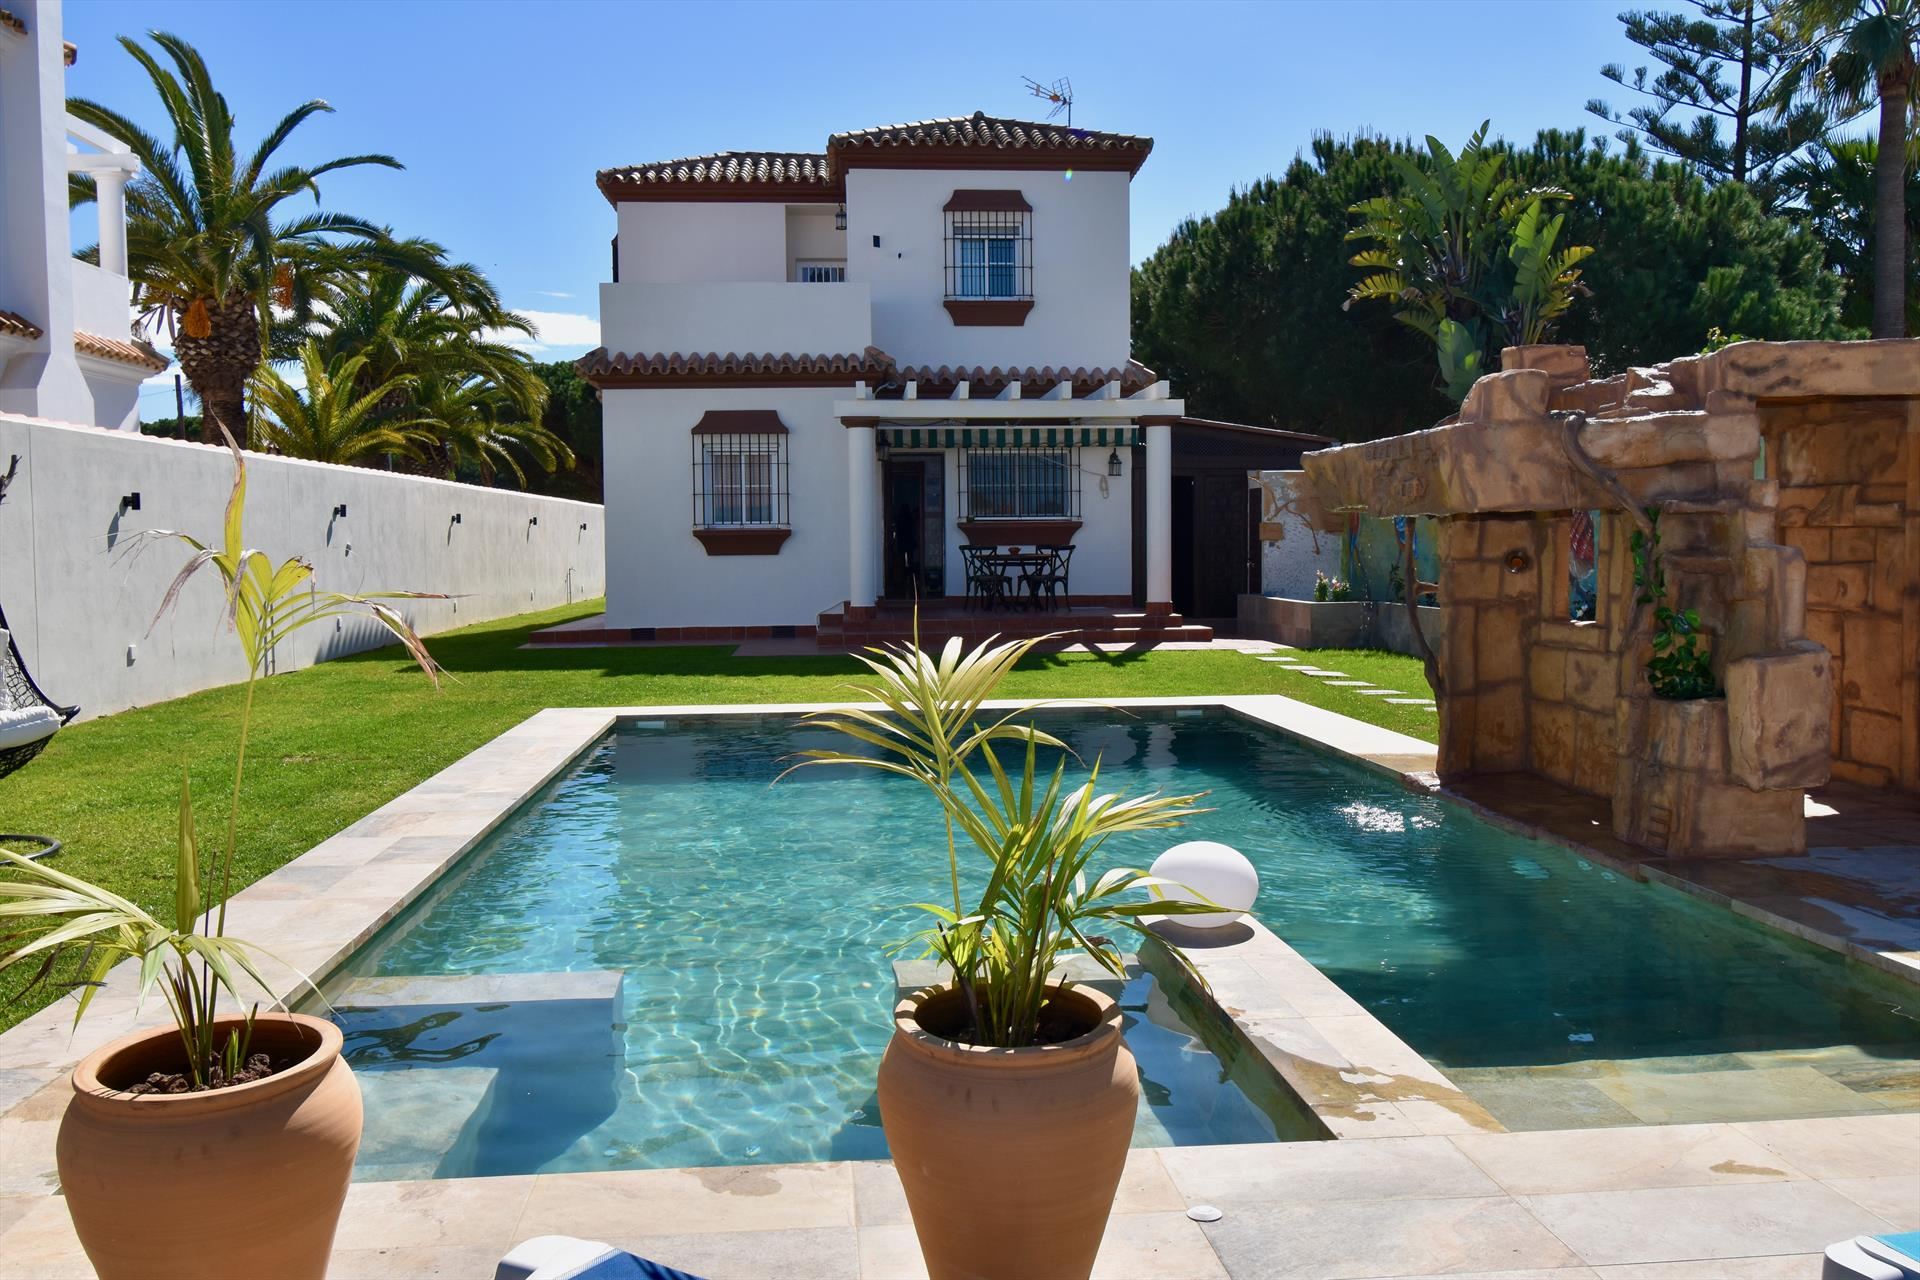 Mundo Nuevo, Villa  with private pool in Chiclana de la Frontera, Andalusia, Spain for 6 persons.....